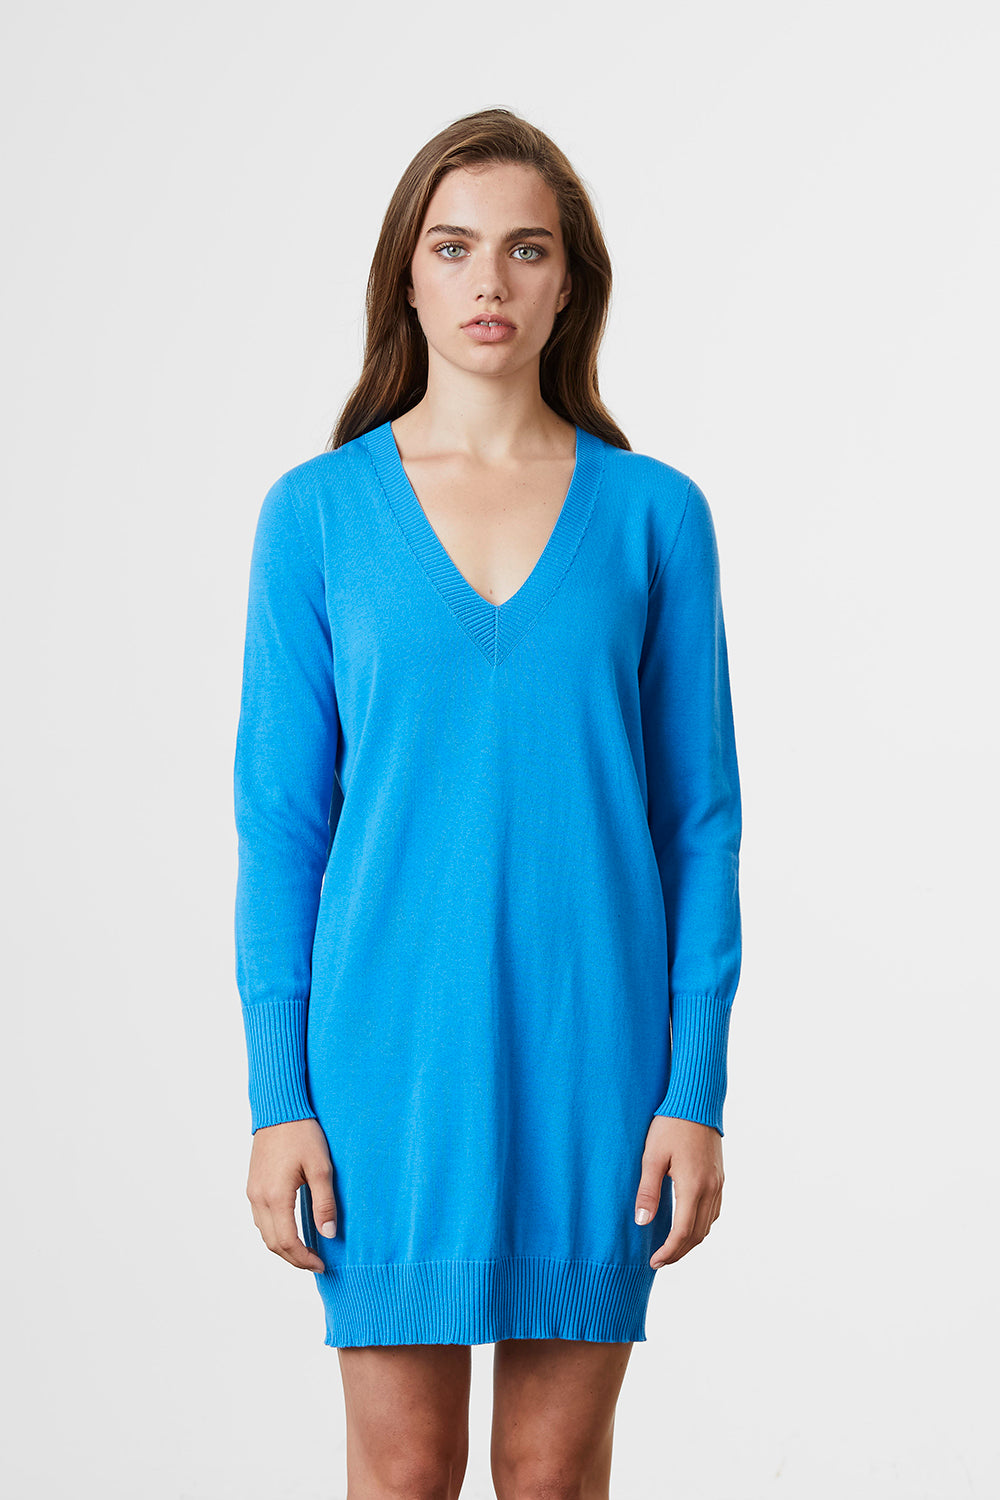 Deep V Dress - Standard Issue